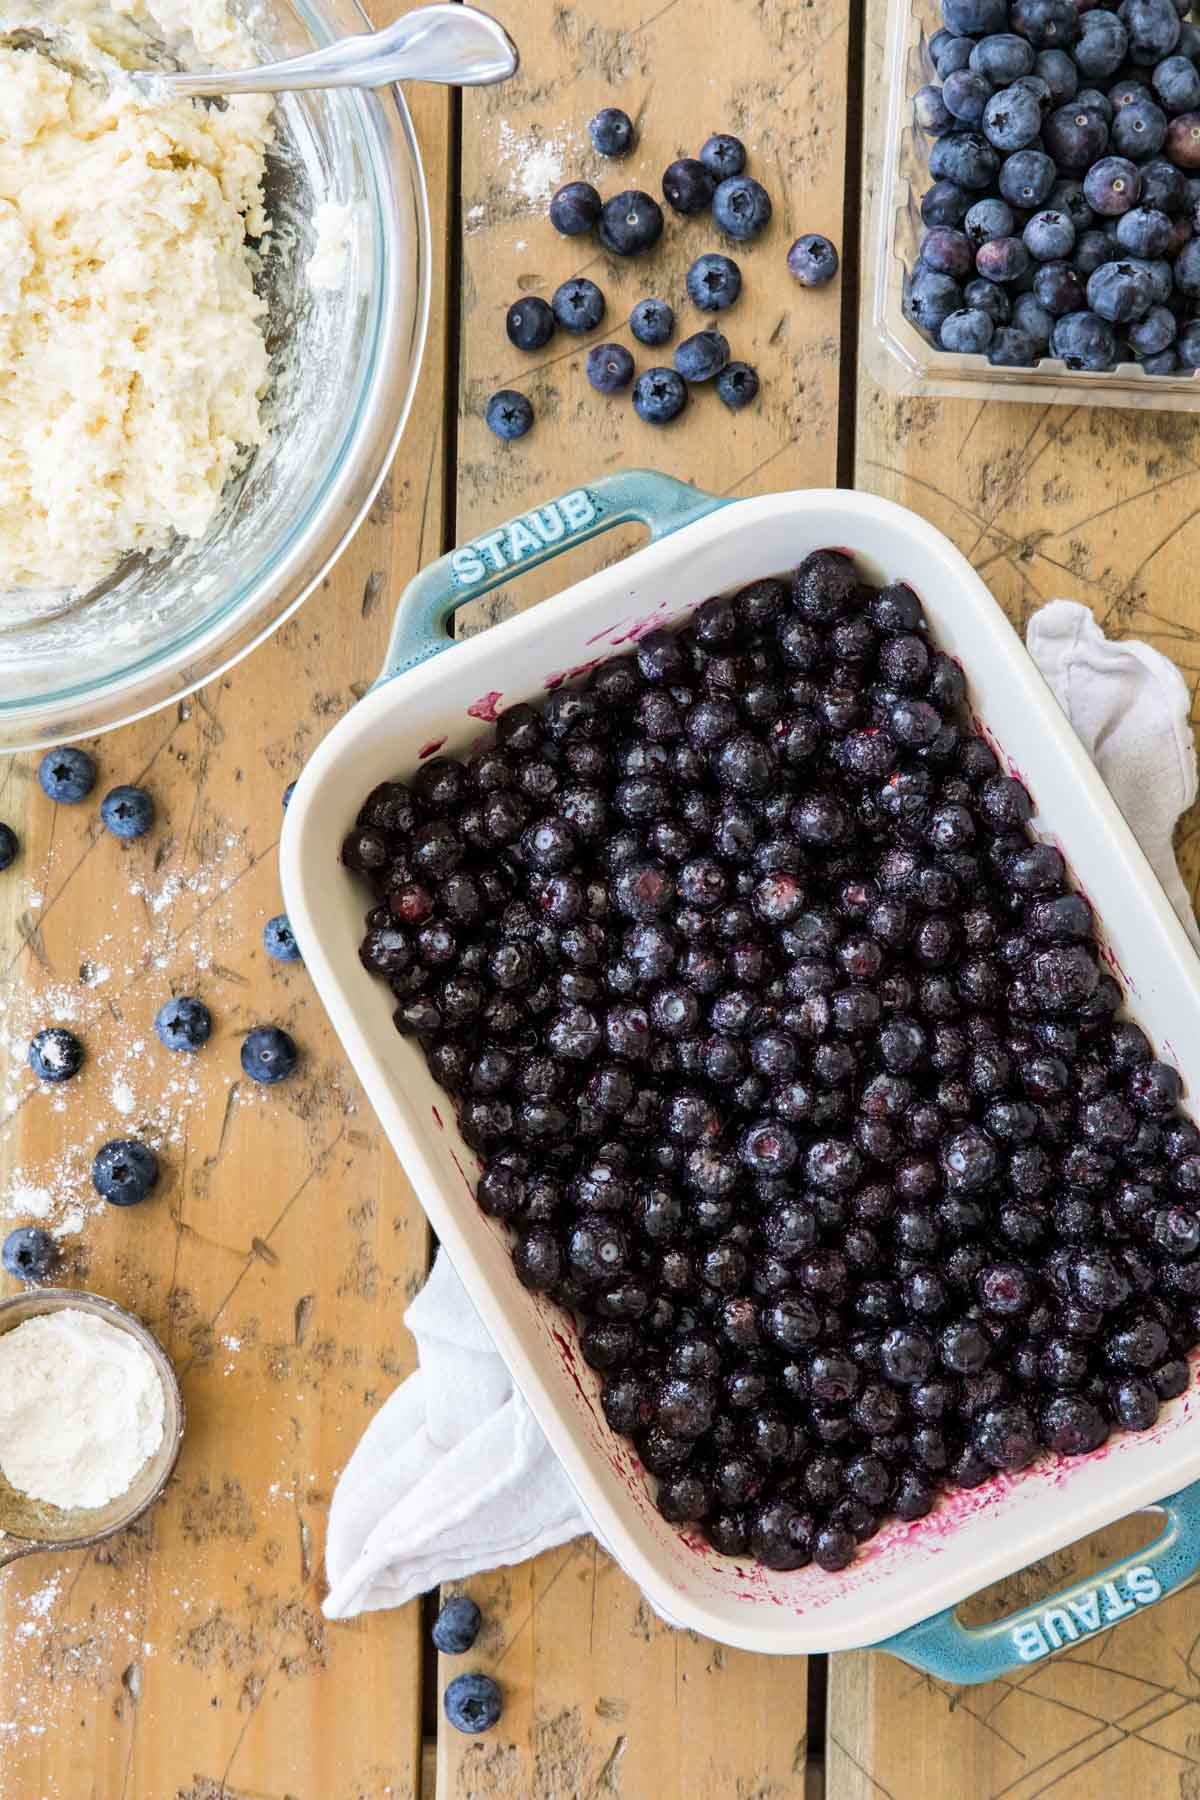 blueberries and muffin batter